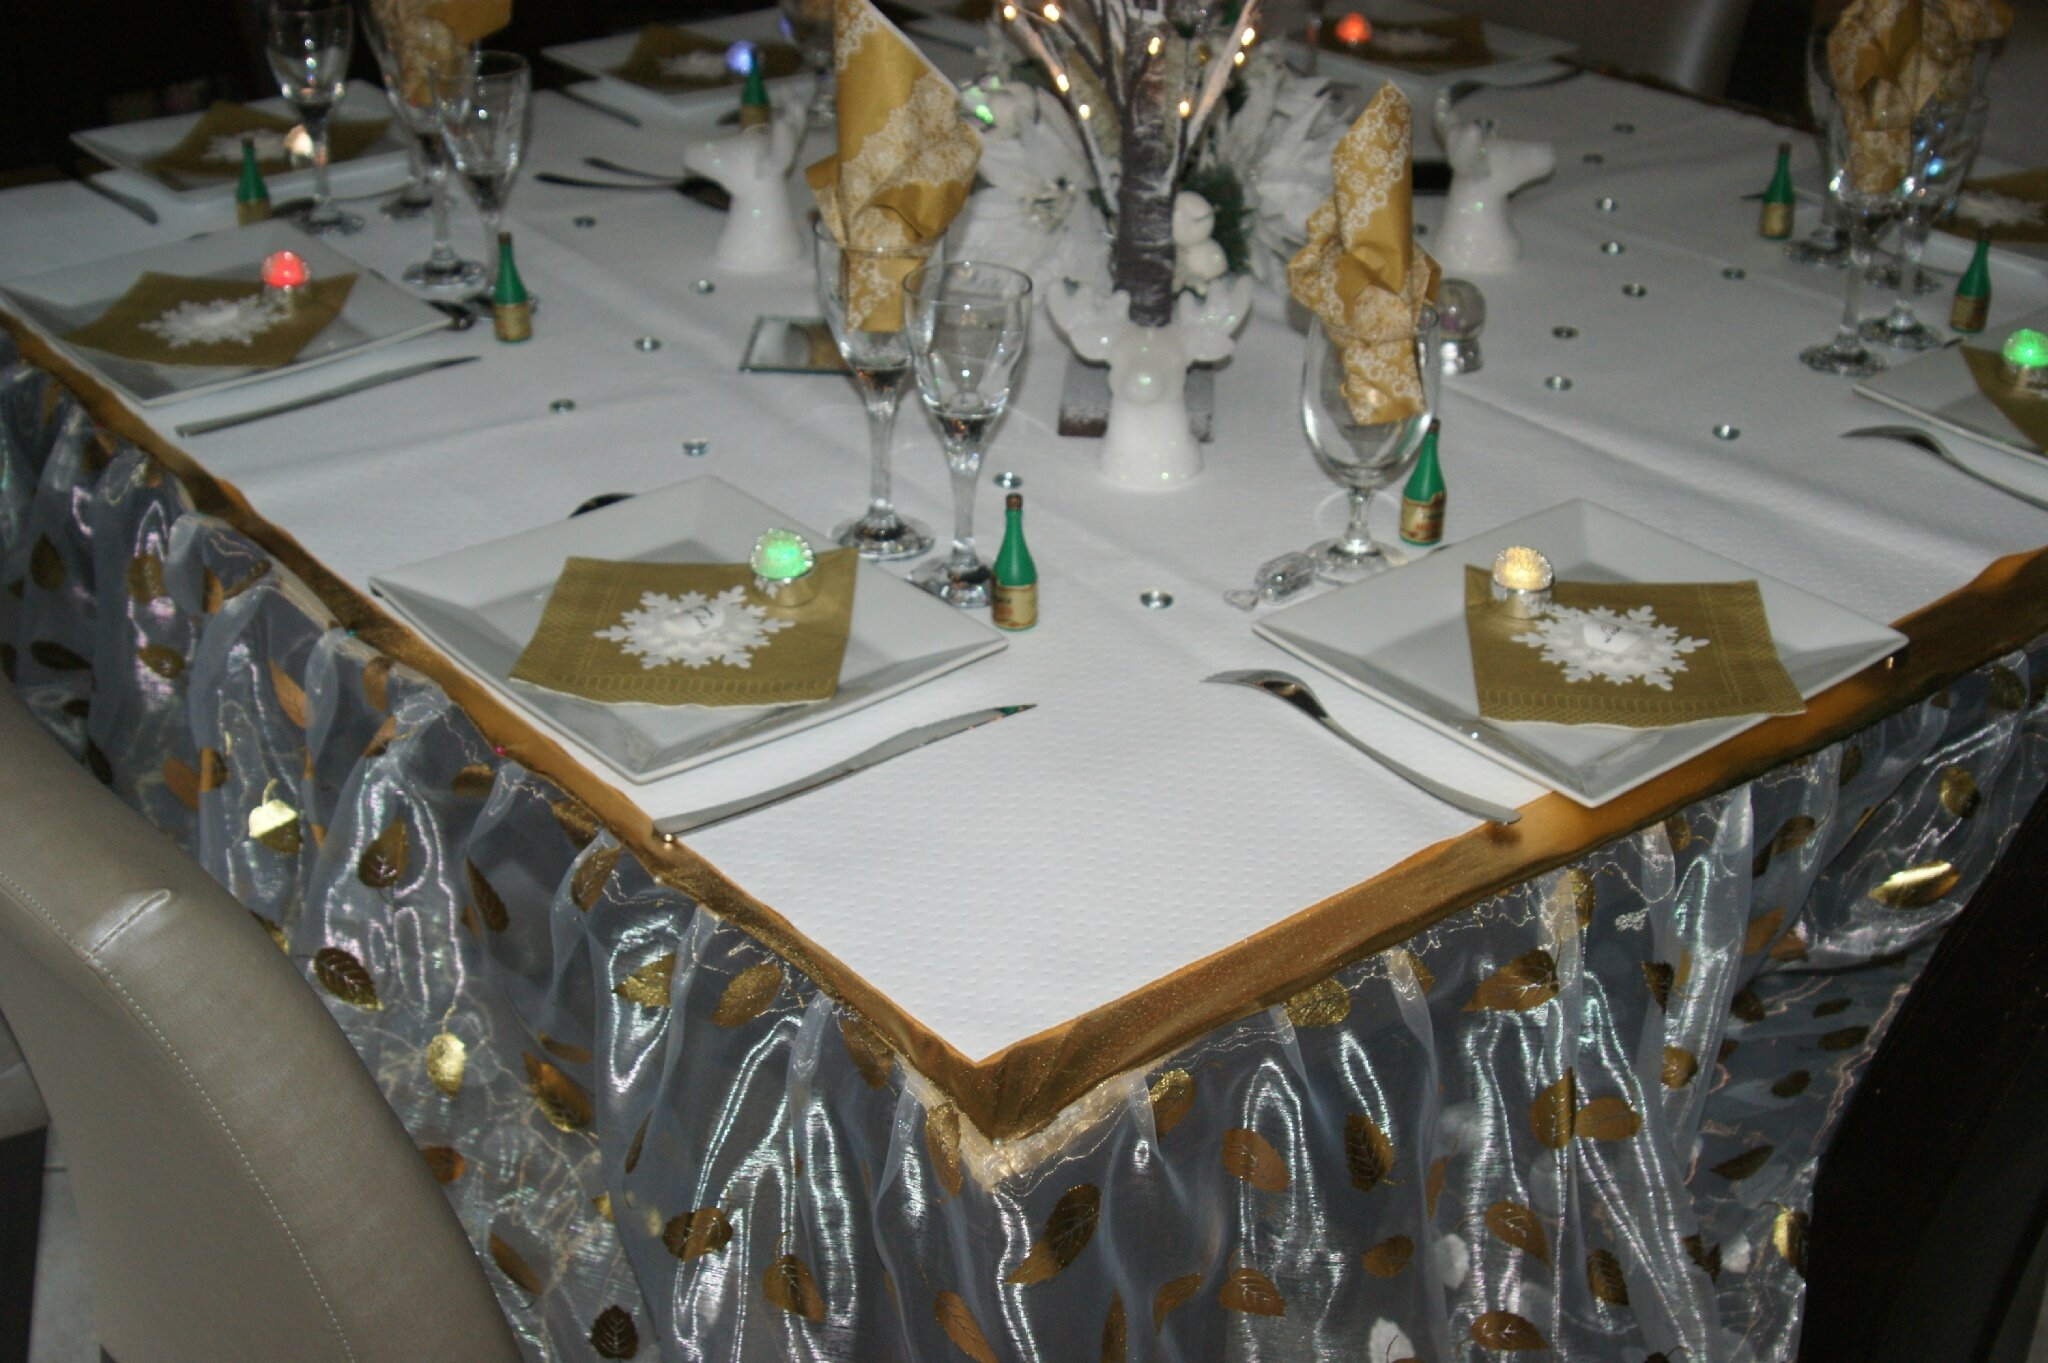 Decoration reveillon 31 decembre - Deco table reveillon ...